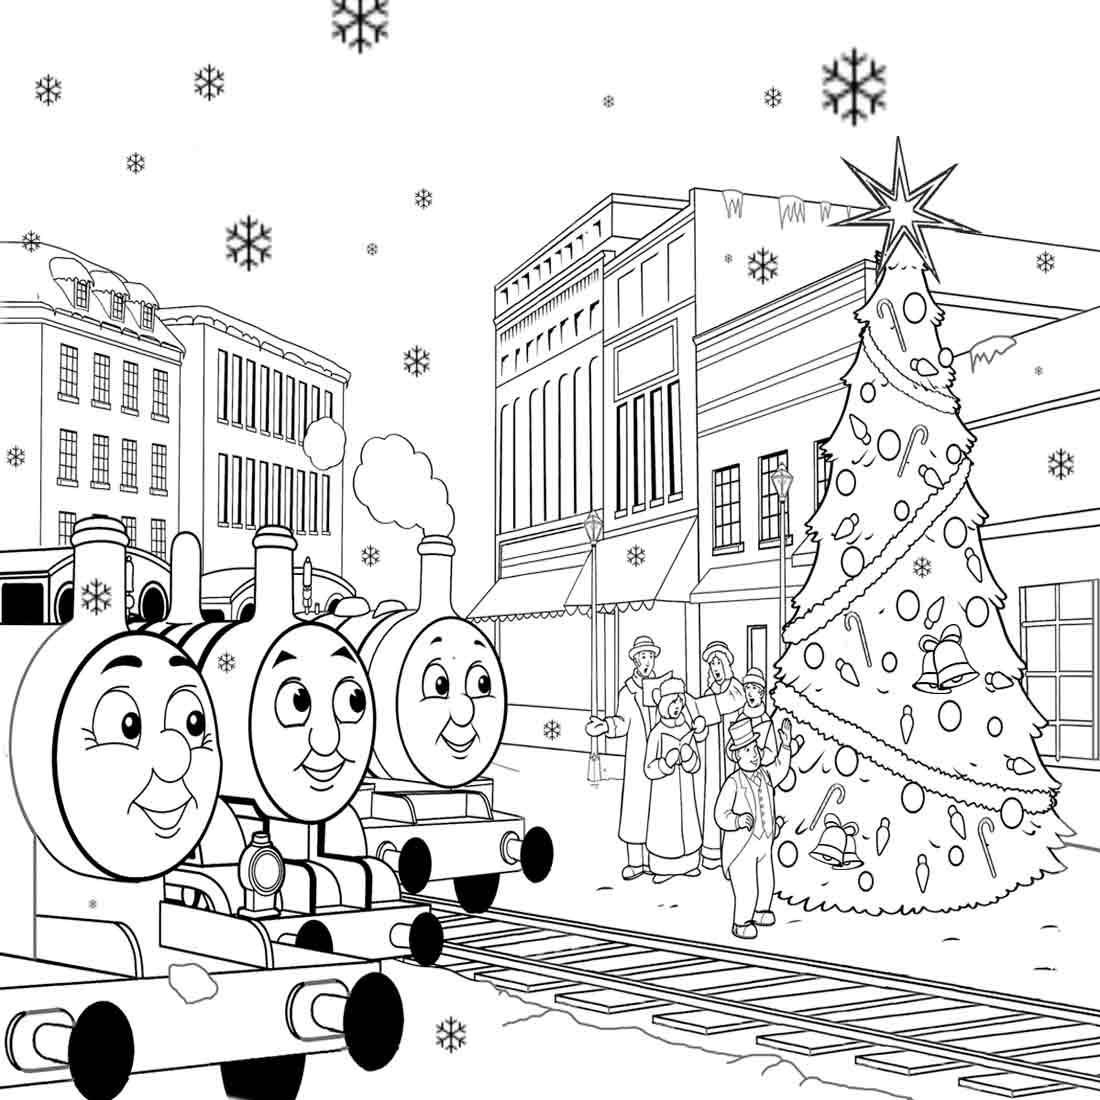 Thomas The Train Christmas Coloring Pages For Kids Thomas The Train Coloring Pages Hunr Train Coloring Pages Christmas Coloring Pages Animal Coloring Pages